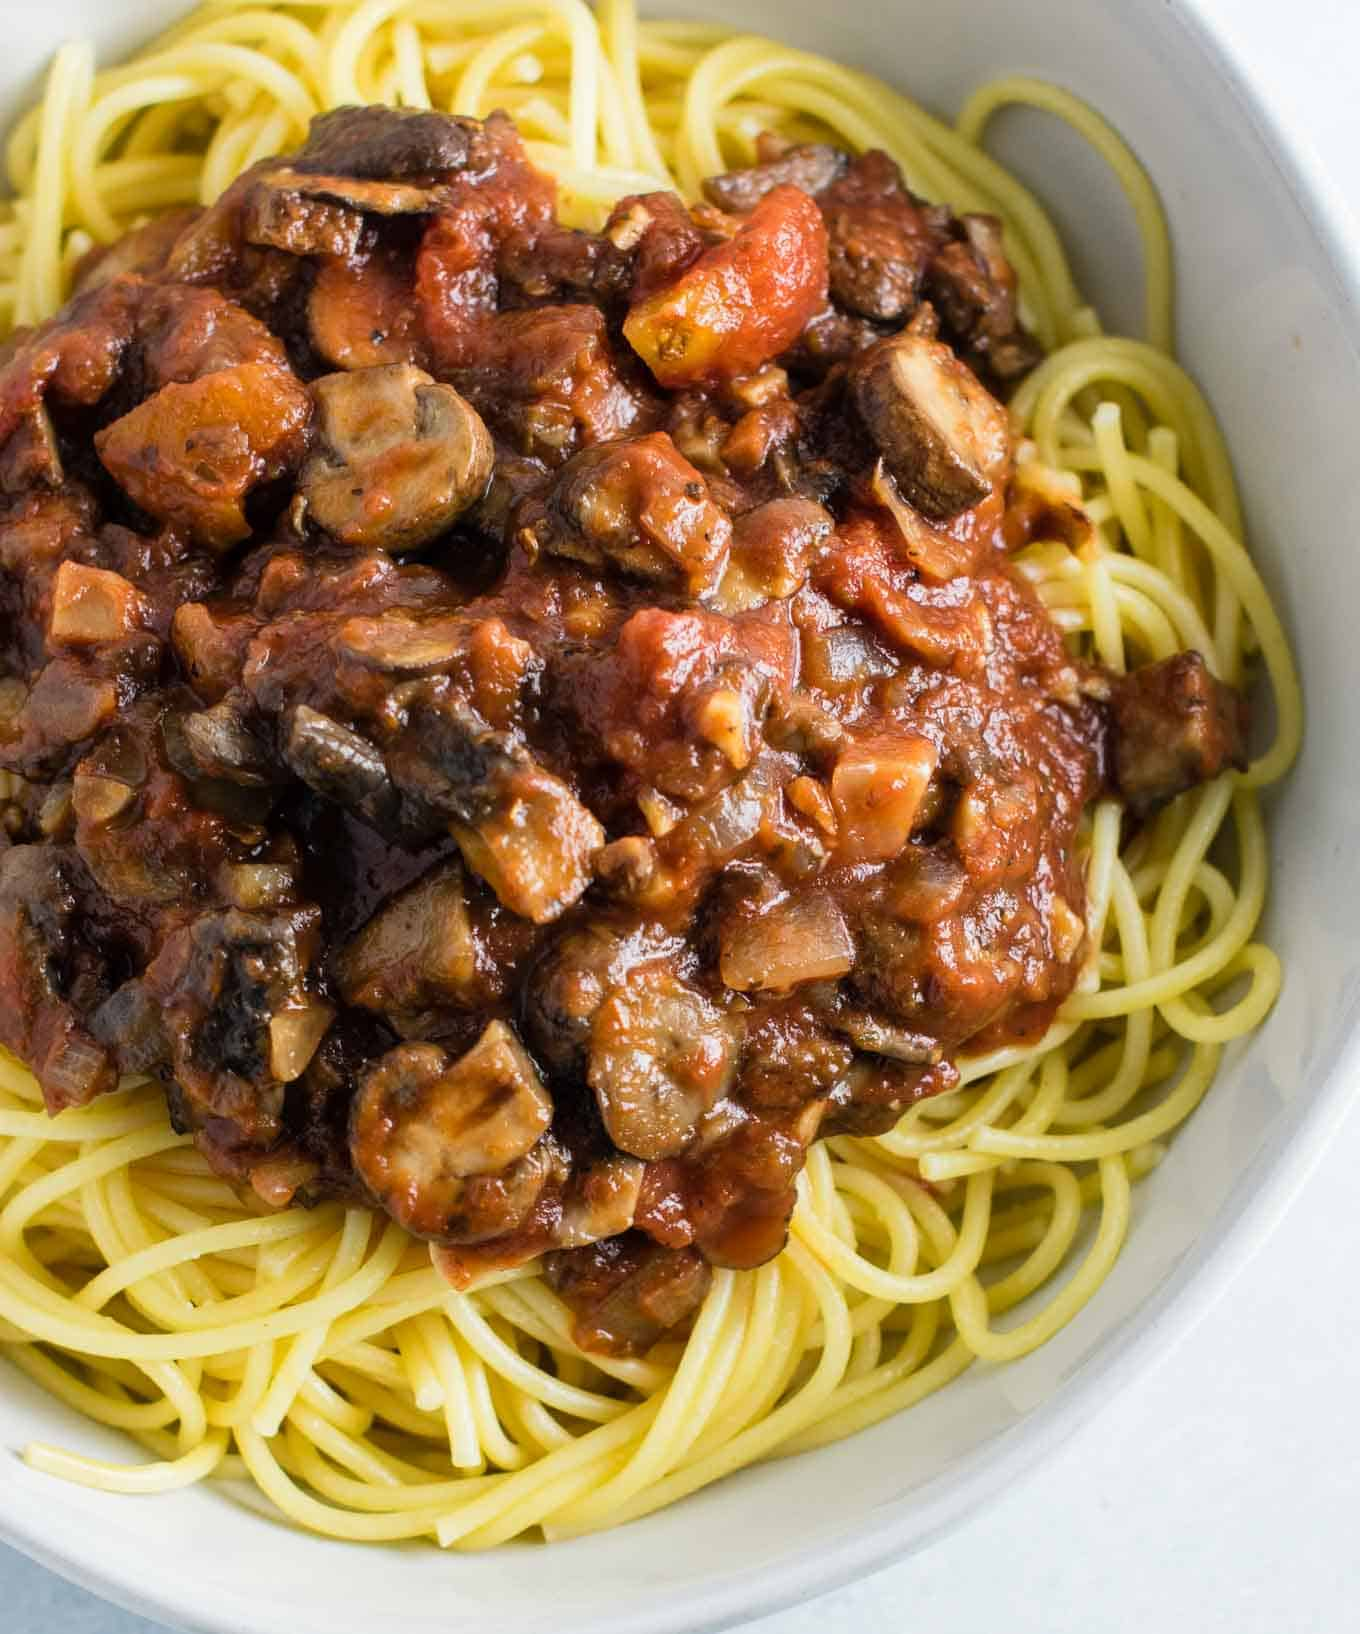 vegetarian mushroom spaghetti sauce over white spaghetti noodles in a white bowl